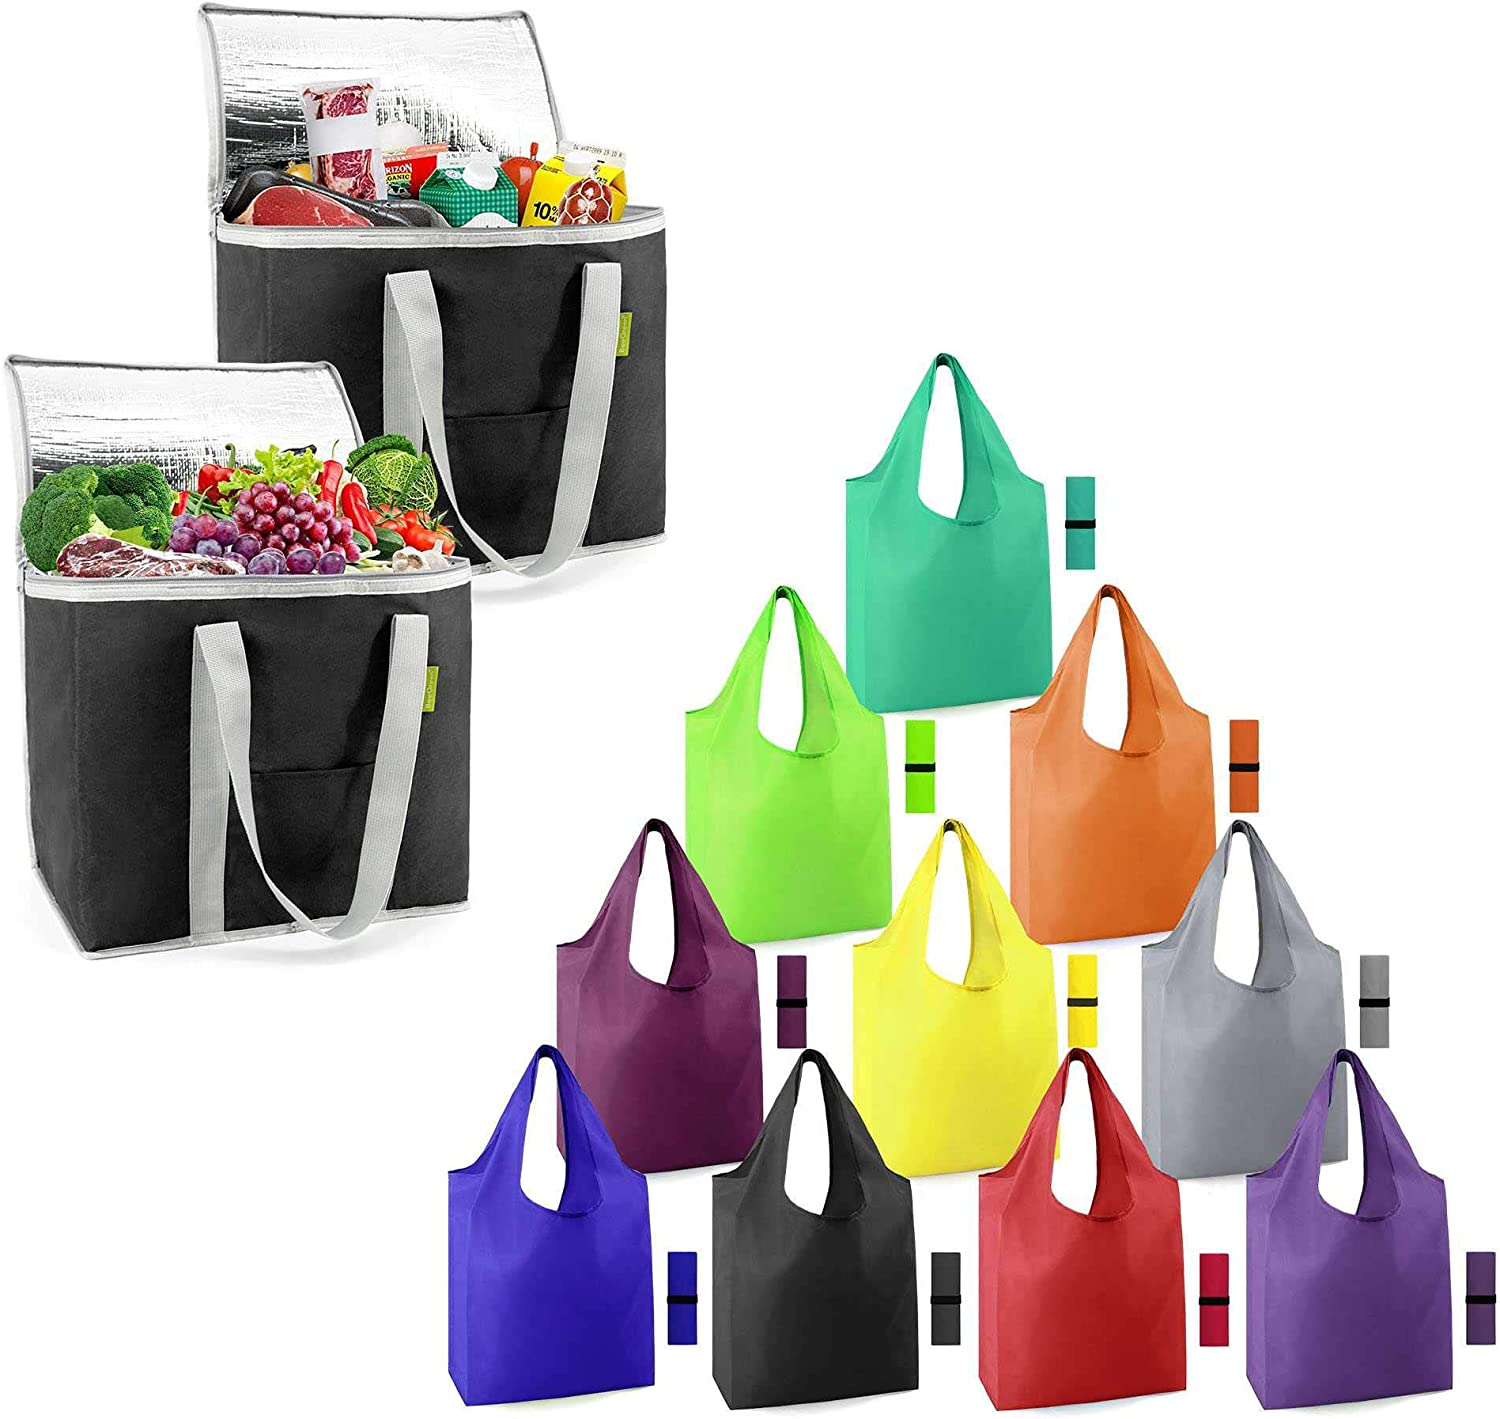 12 Pack Insulated Grocery Bags Shopping Cooler Thermal Tote for Hot Cold Frozen Food Transport X-Large 60LBS and Reusable Grocery Bags Colorful 50LBS Foldable Washable